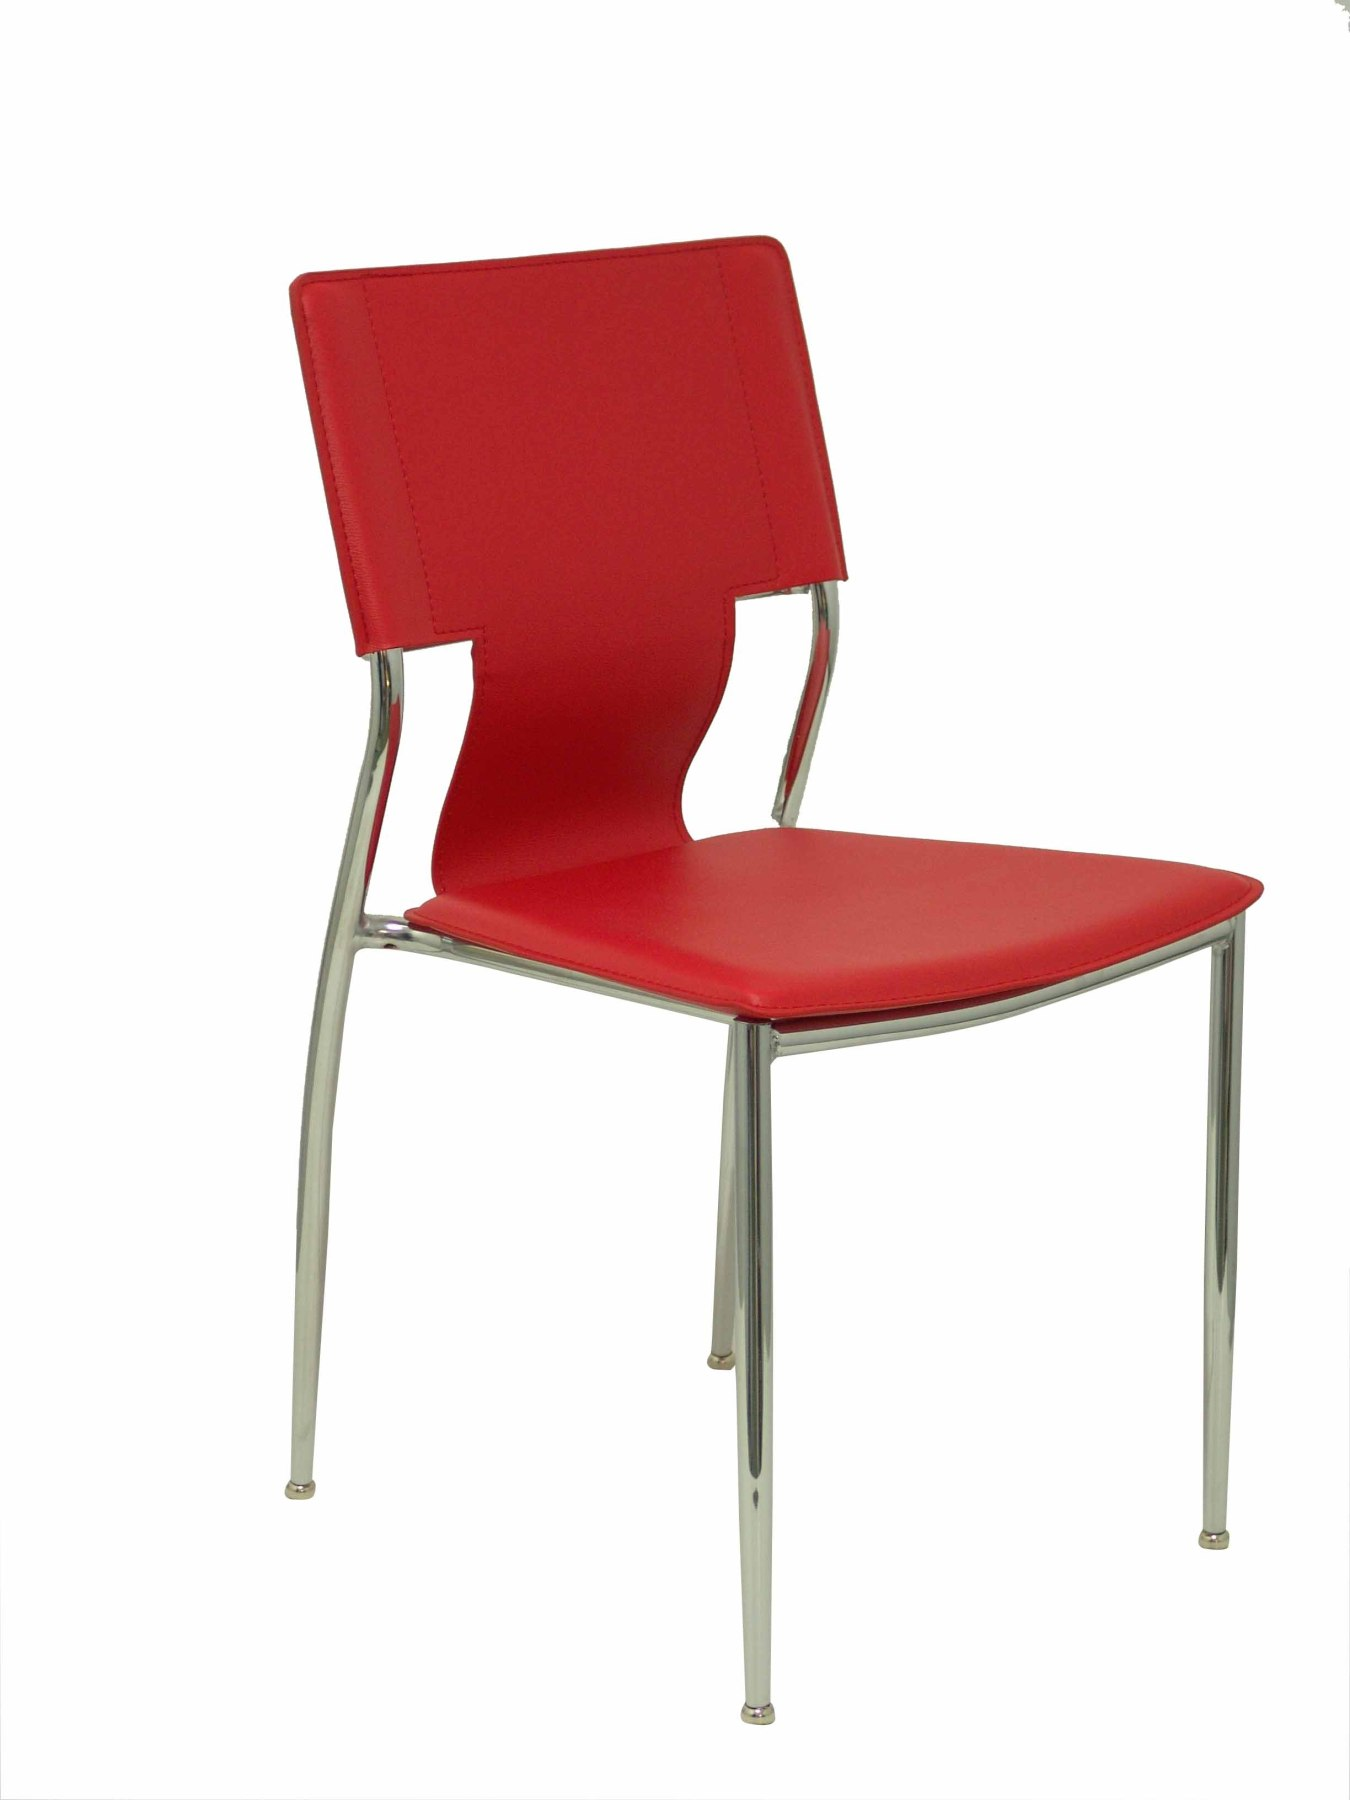 Pack 4 Chairs Confident Of 4 Legs With Estructrua Chrome Seat And Back Upholstered In Similpiel Network PIQUE